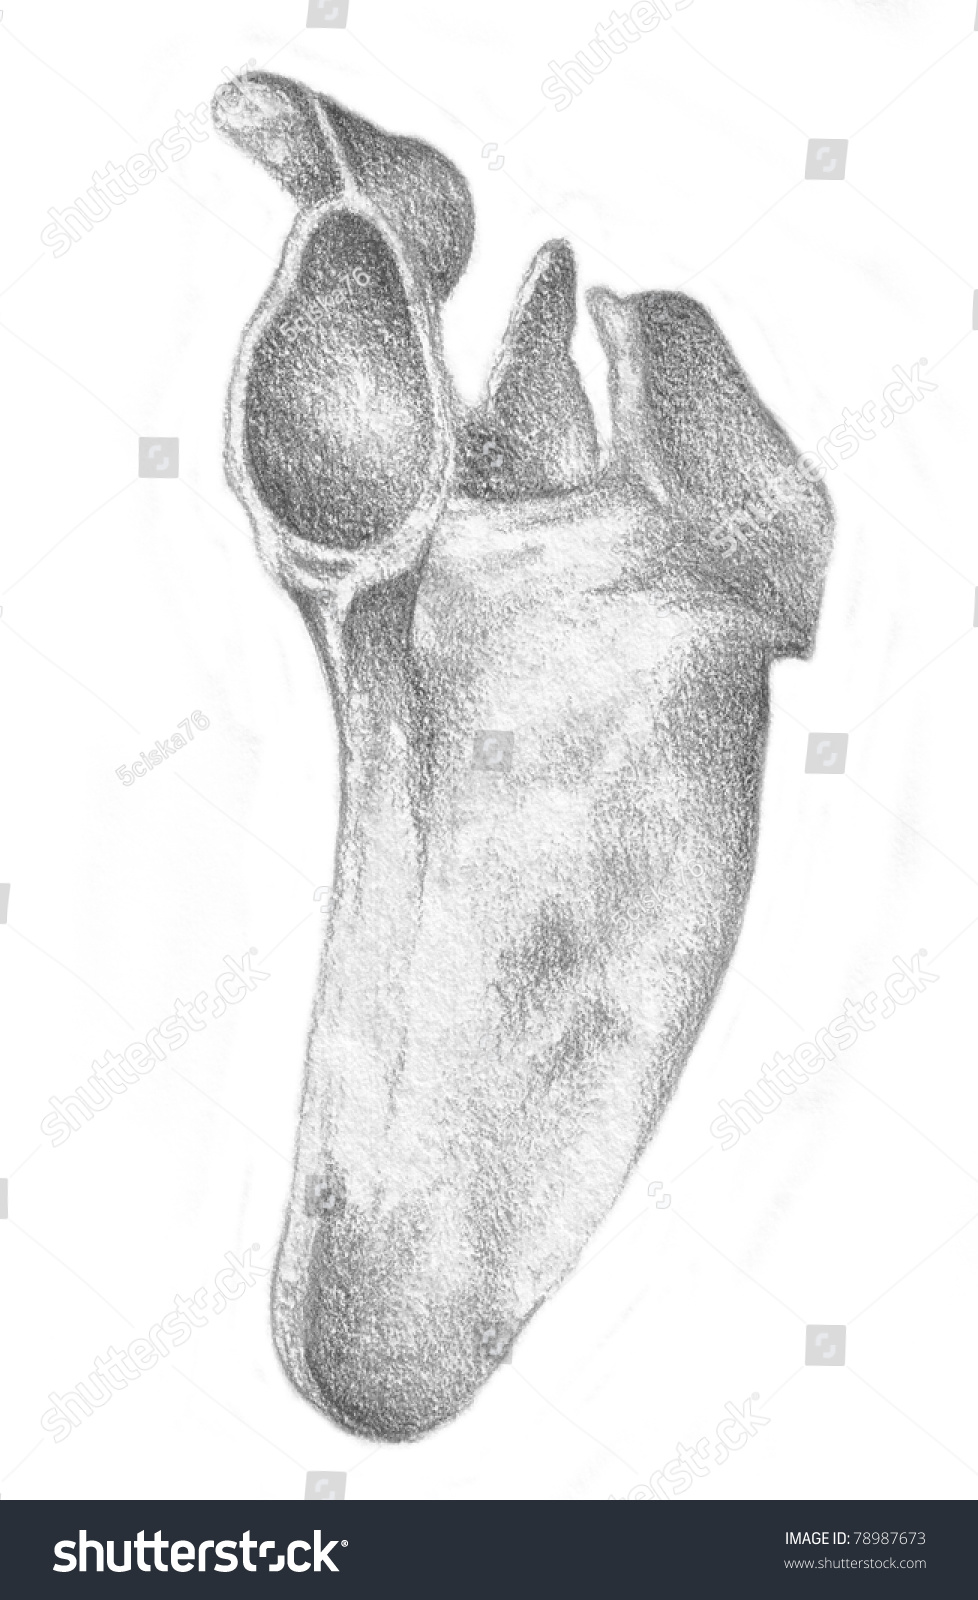 Human Anatomy Shoulder Blade Stock Illustration 78987673 - Shutterstock